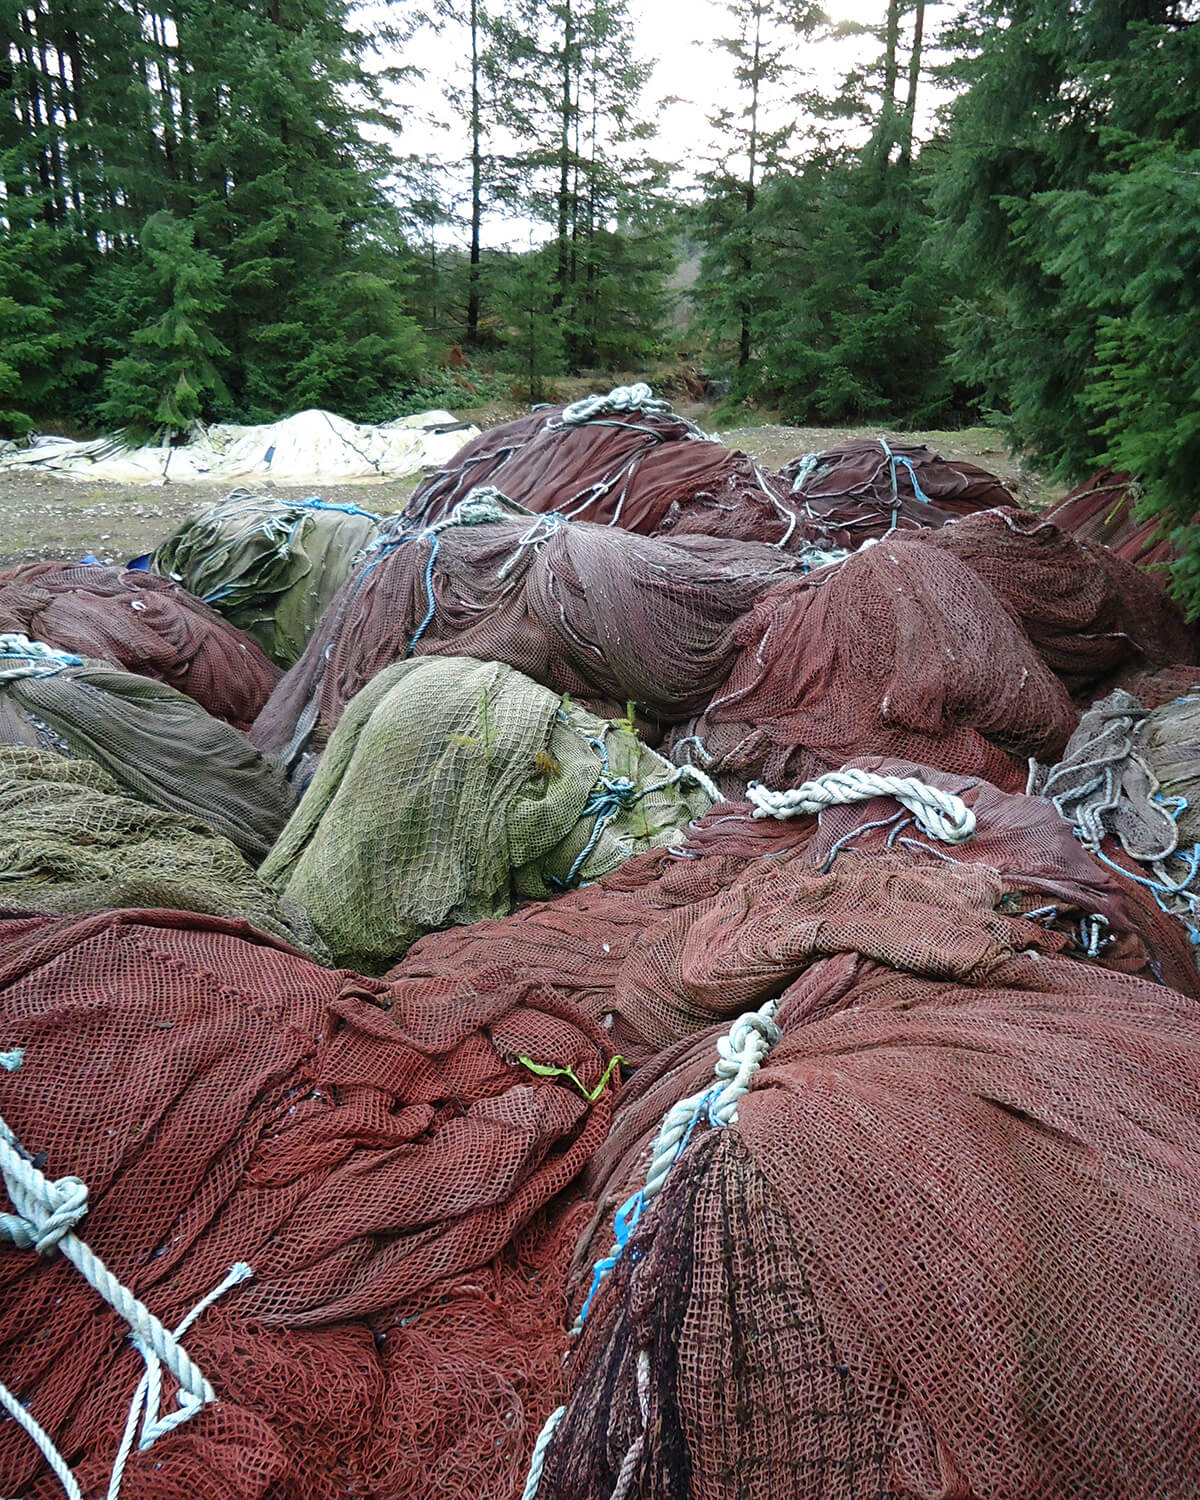 Fishing nets abandoned in a forest.